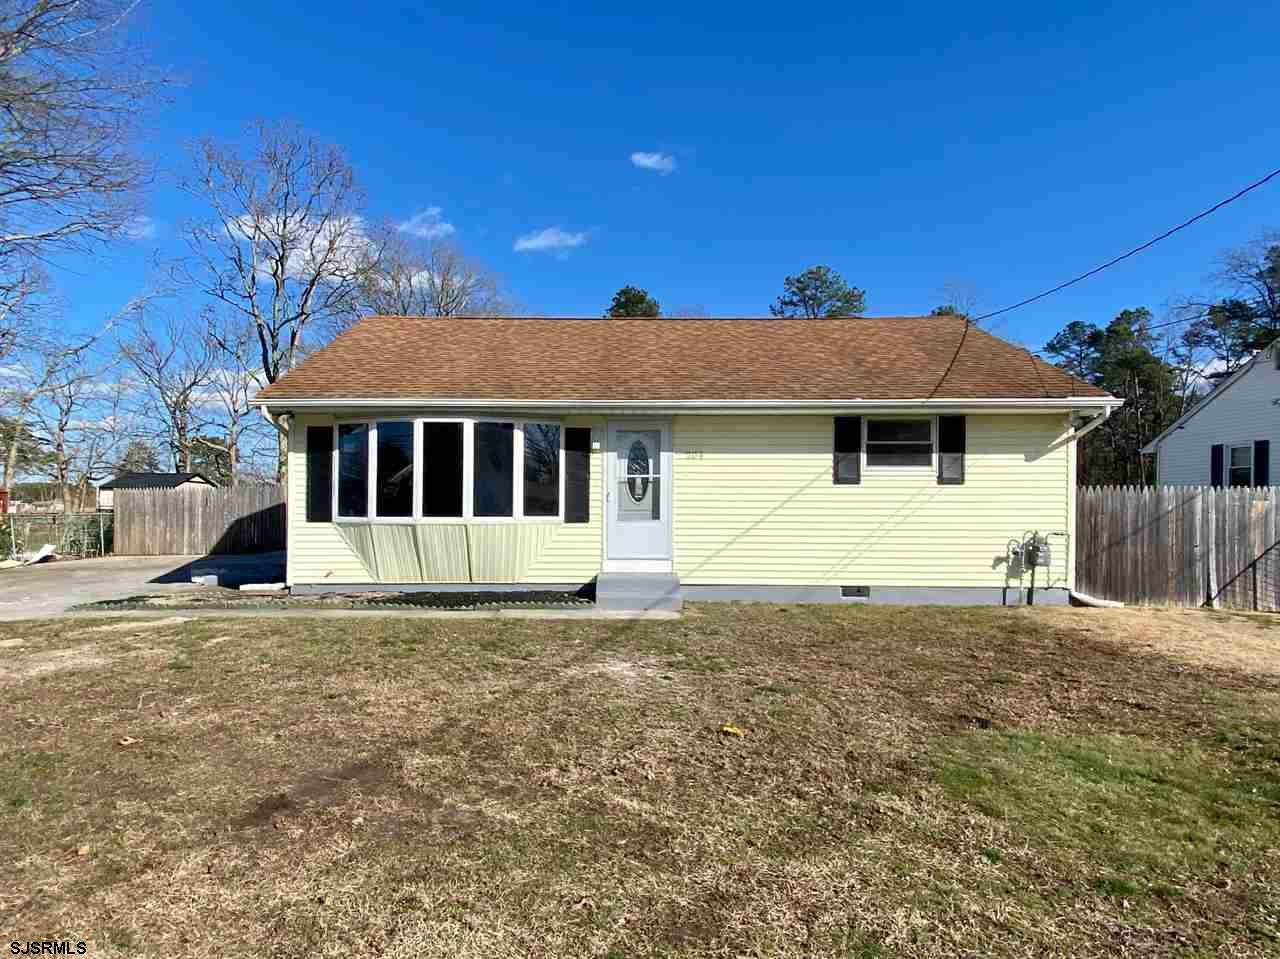 Rancher recently updated! Has 3 Bedroom and 2 Bath. Updated features include new flooring, fresh pai